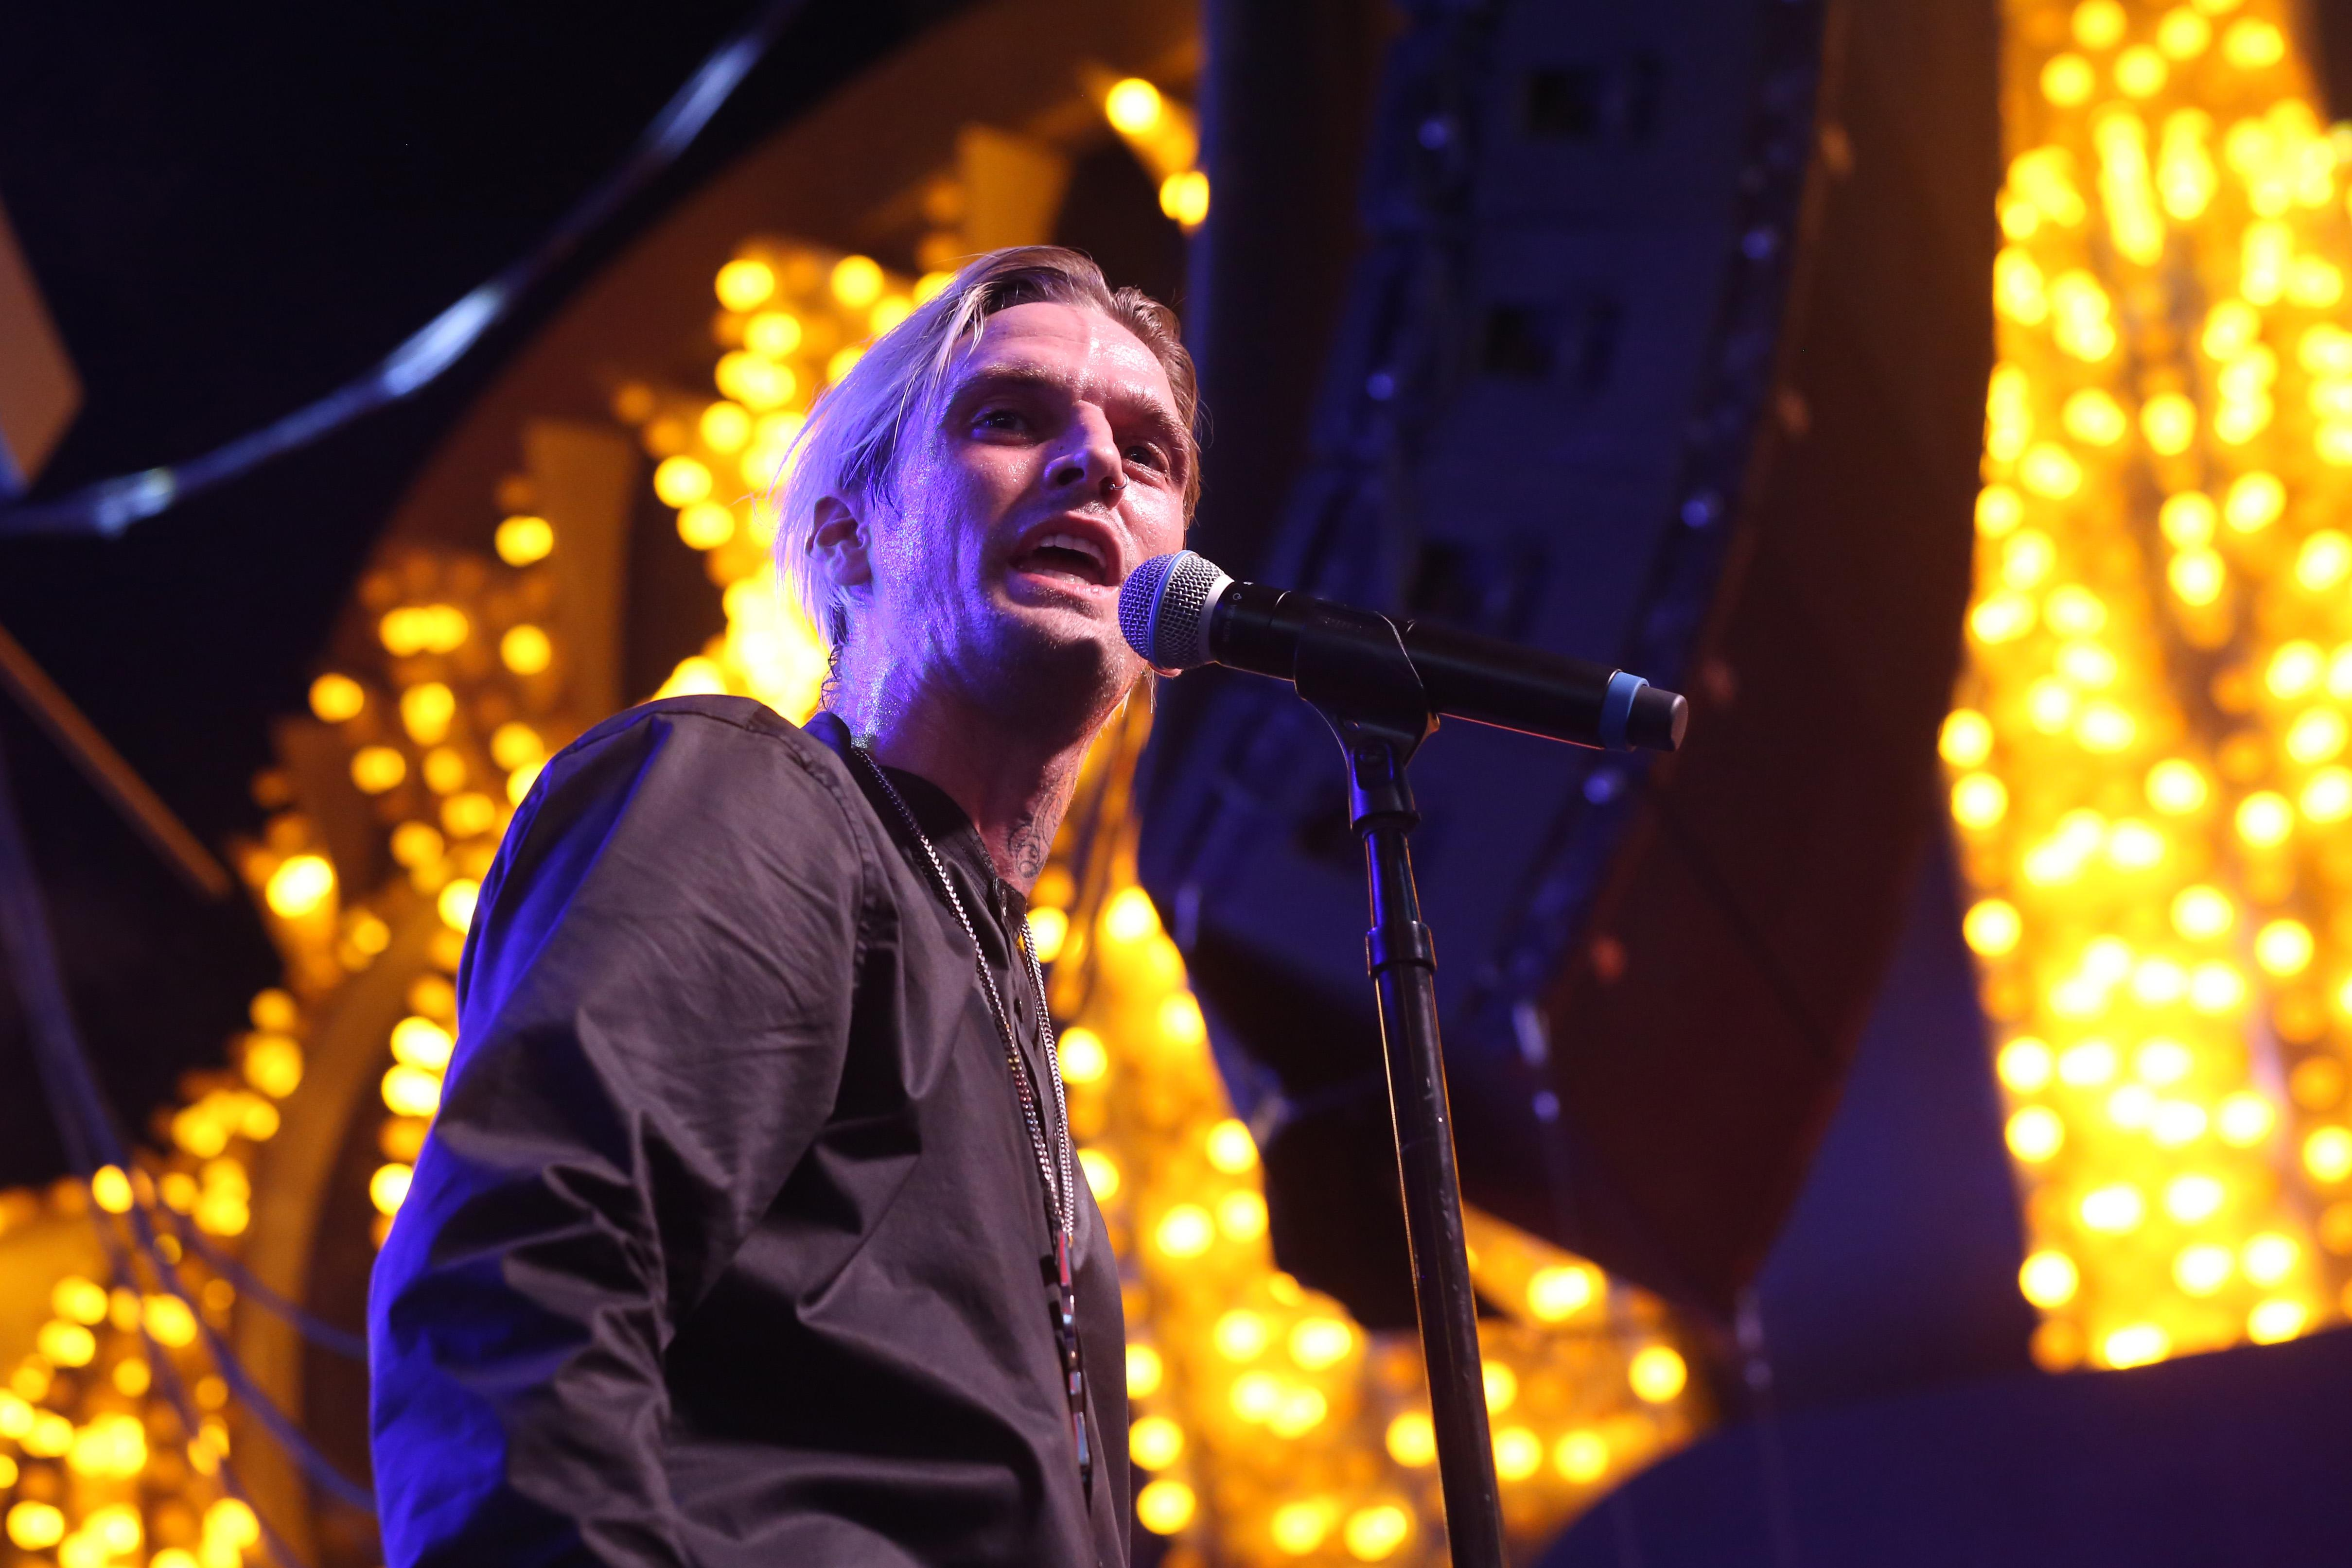 Aaron Carter criticised for 'severely racist' post: 'Ignorance at its finest'